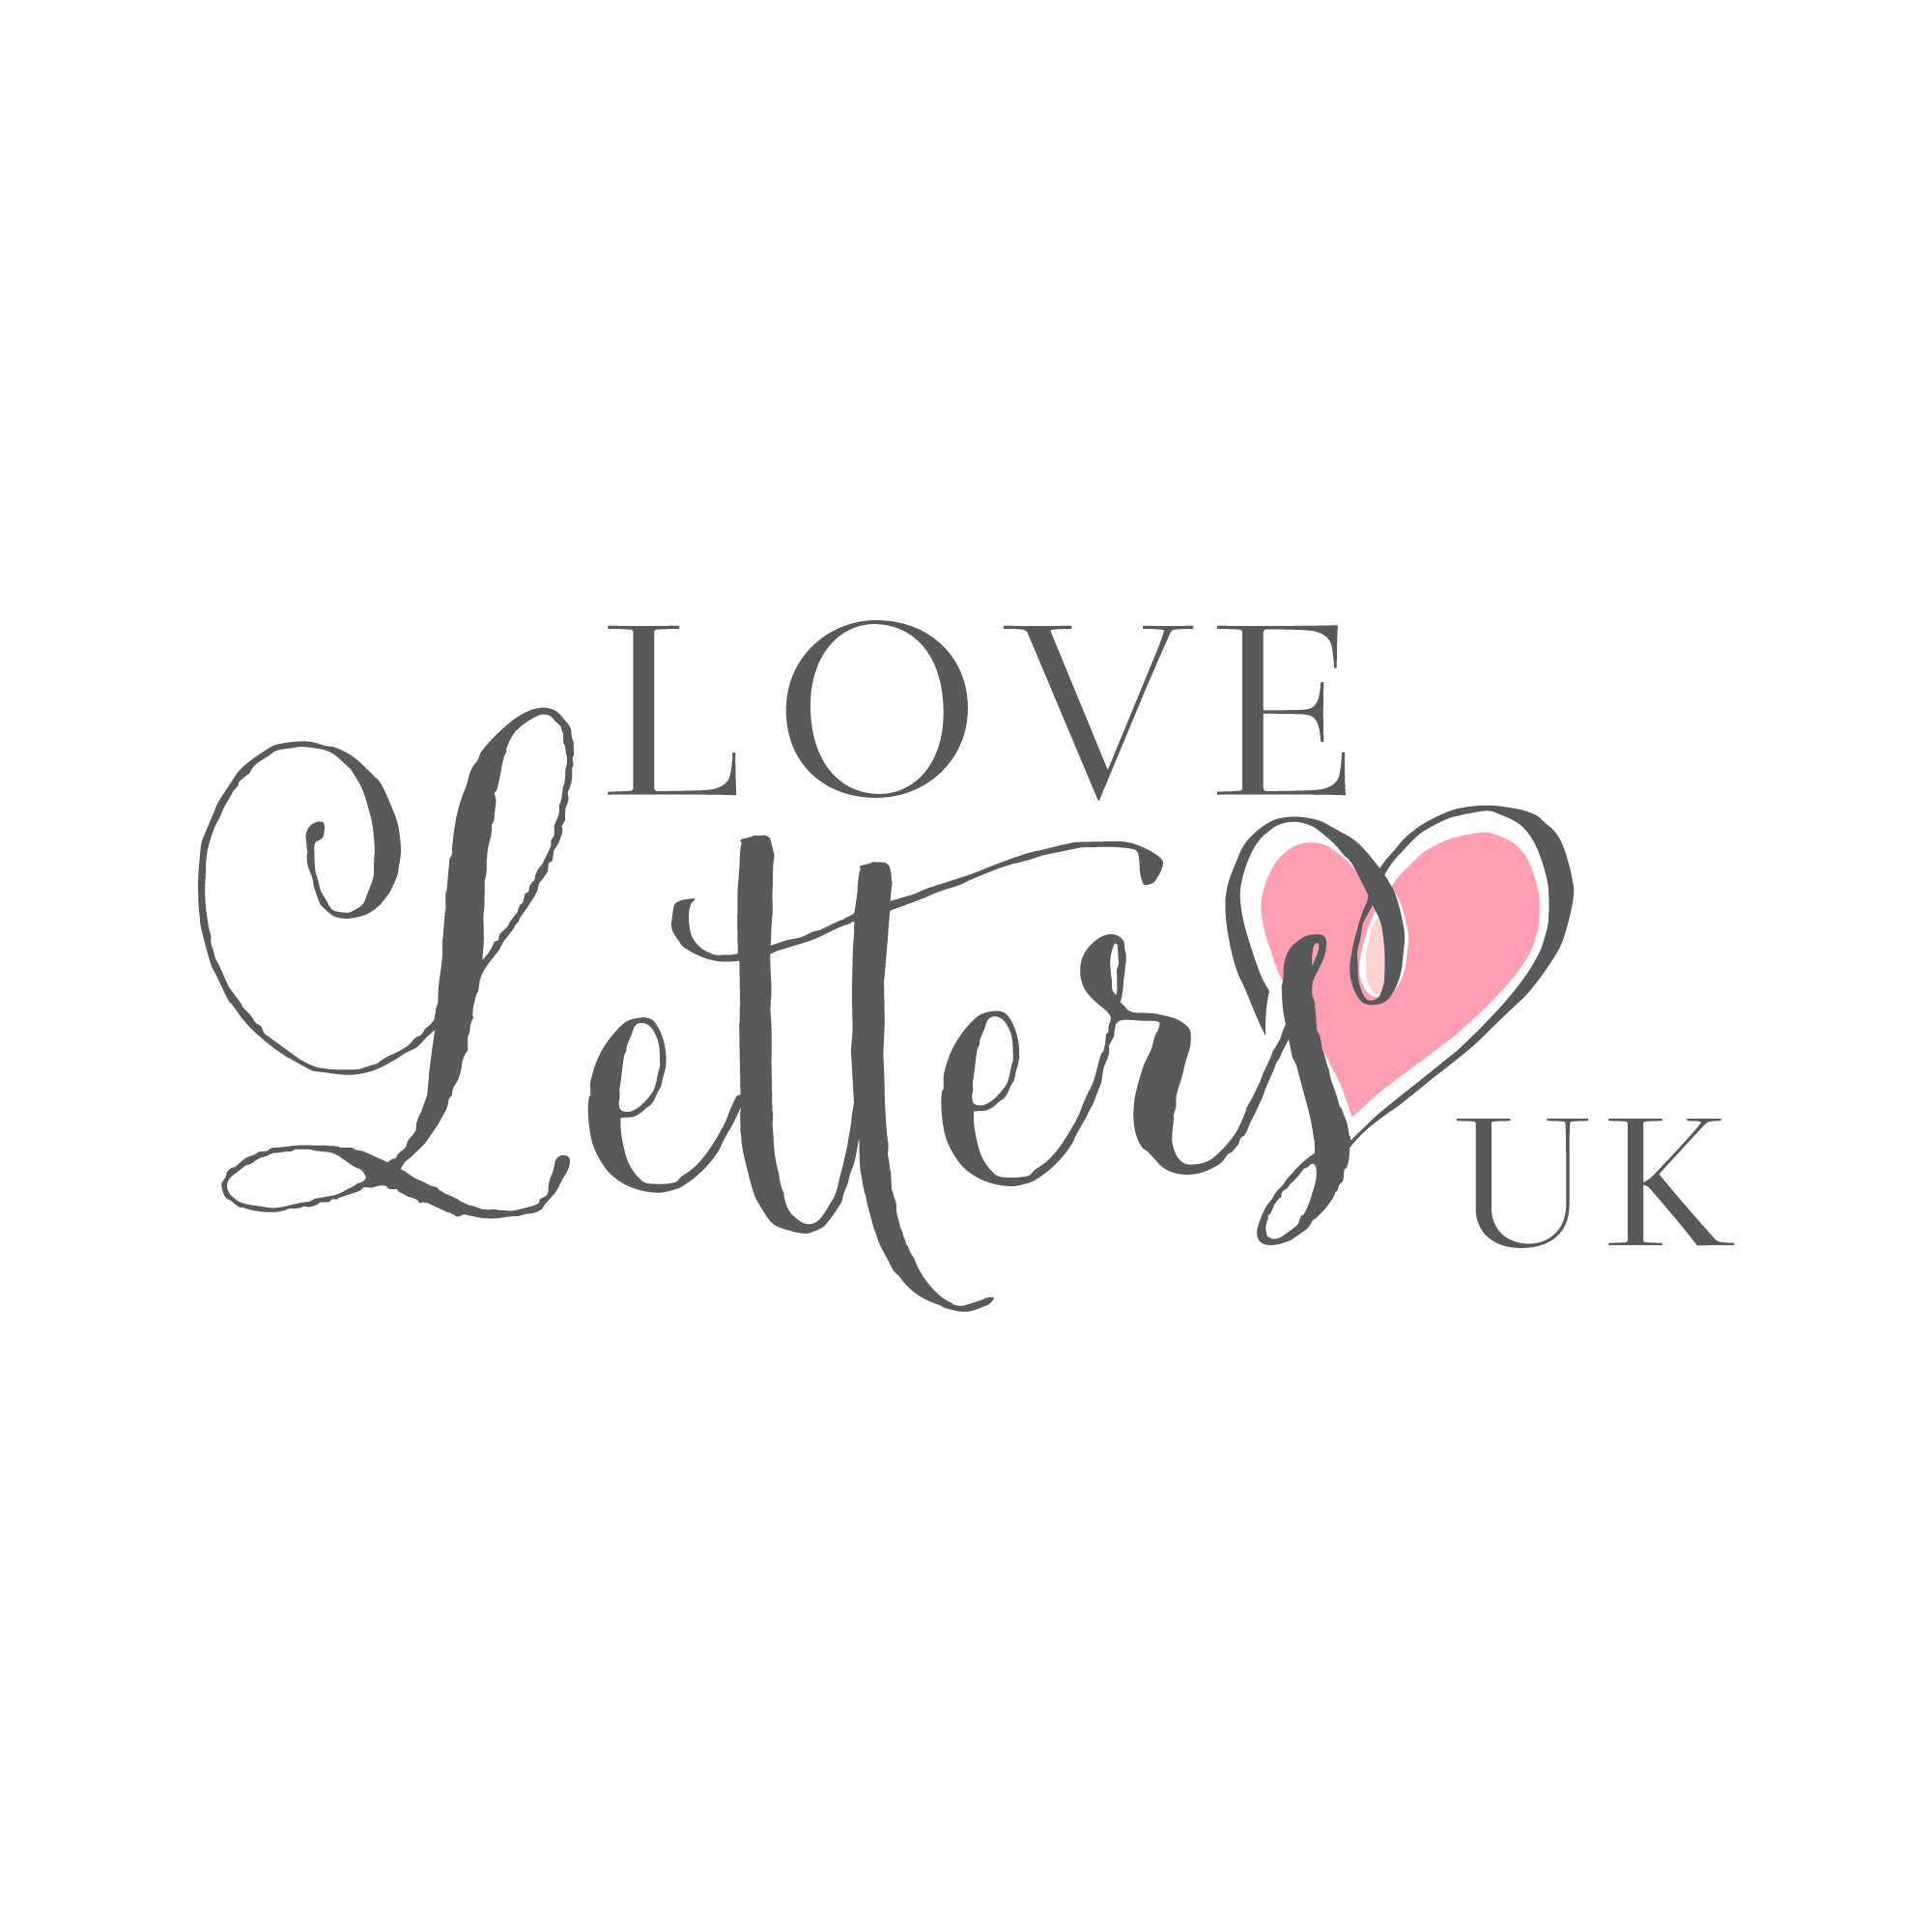 Design with free rein a Logo for Love Letters UK